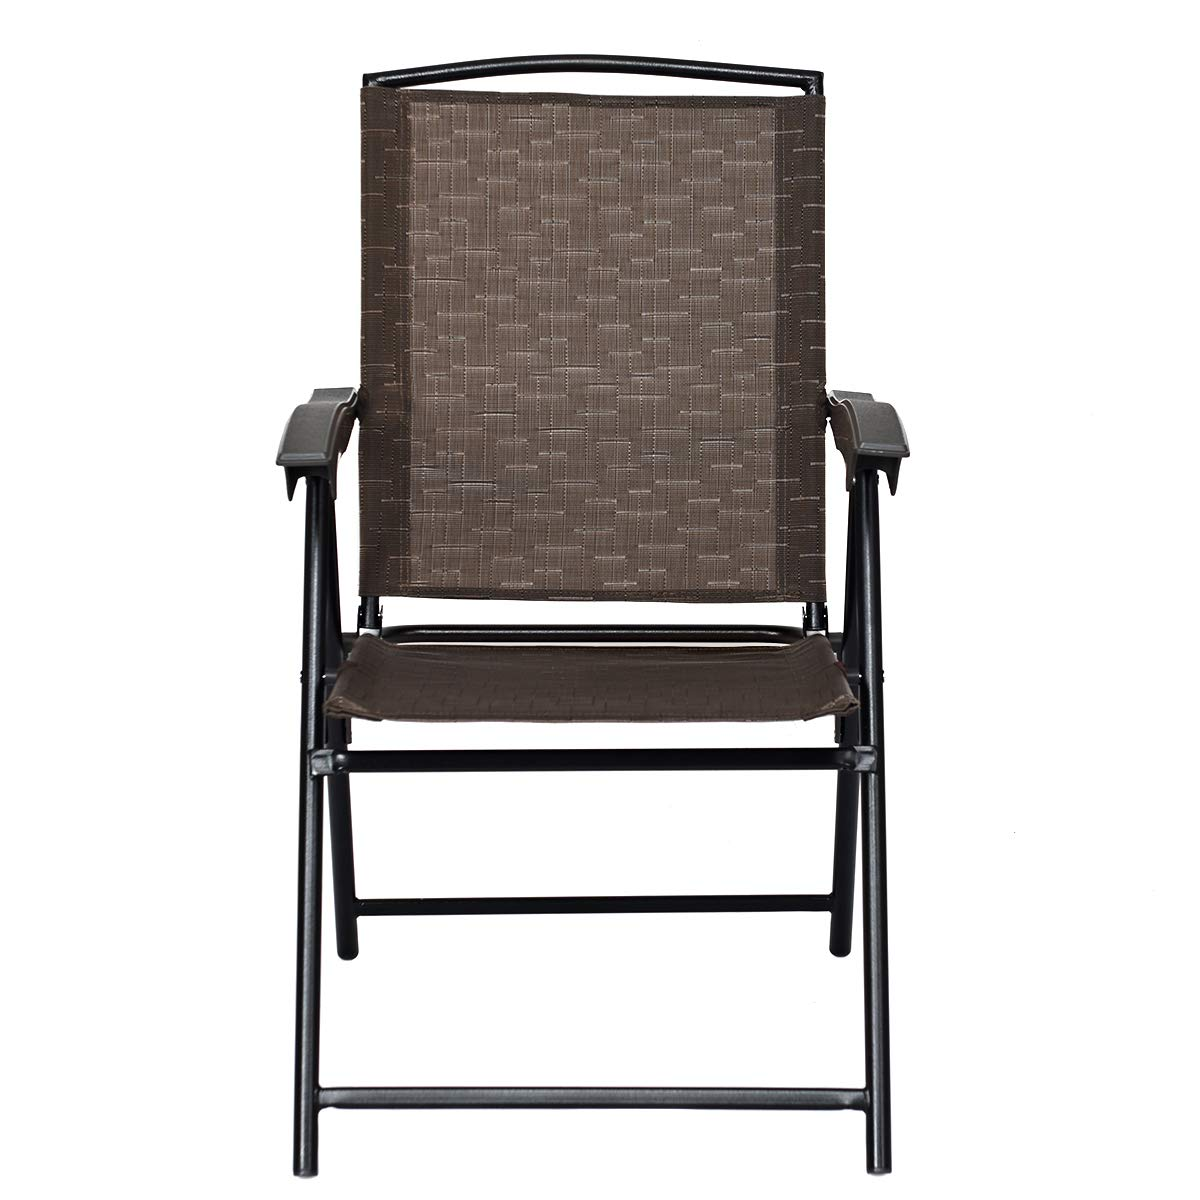 Goplus Sets of 4 Folding Sling Chairs Portable Chairs for Patio Garden Pool Outdoor & Indoor w/Armrests by Goplus (Image #8)